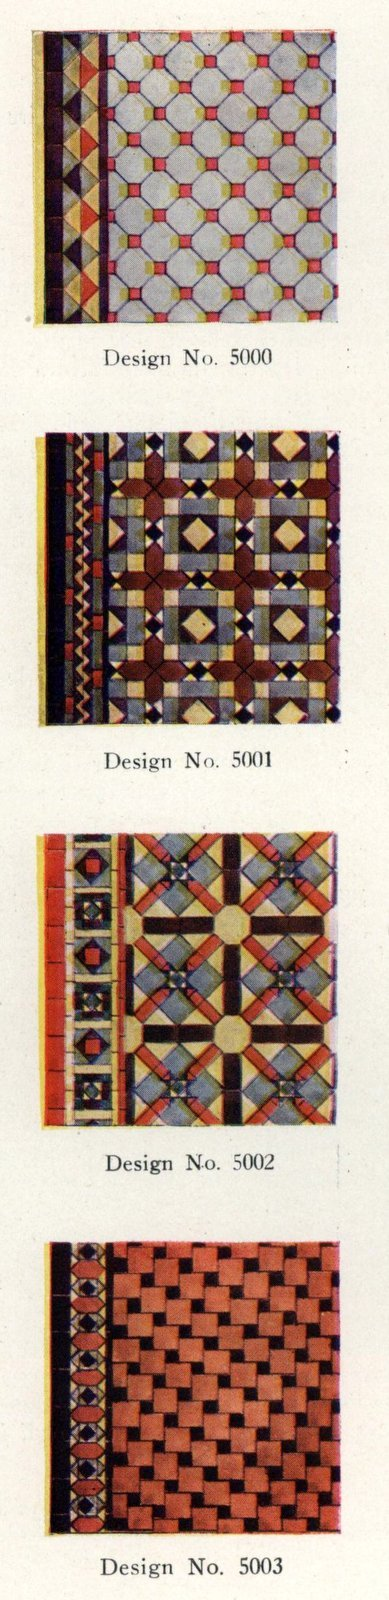 Authentic vintage home decoration with '20s tile patterns